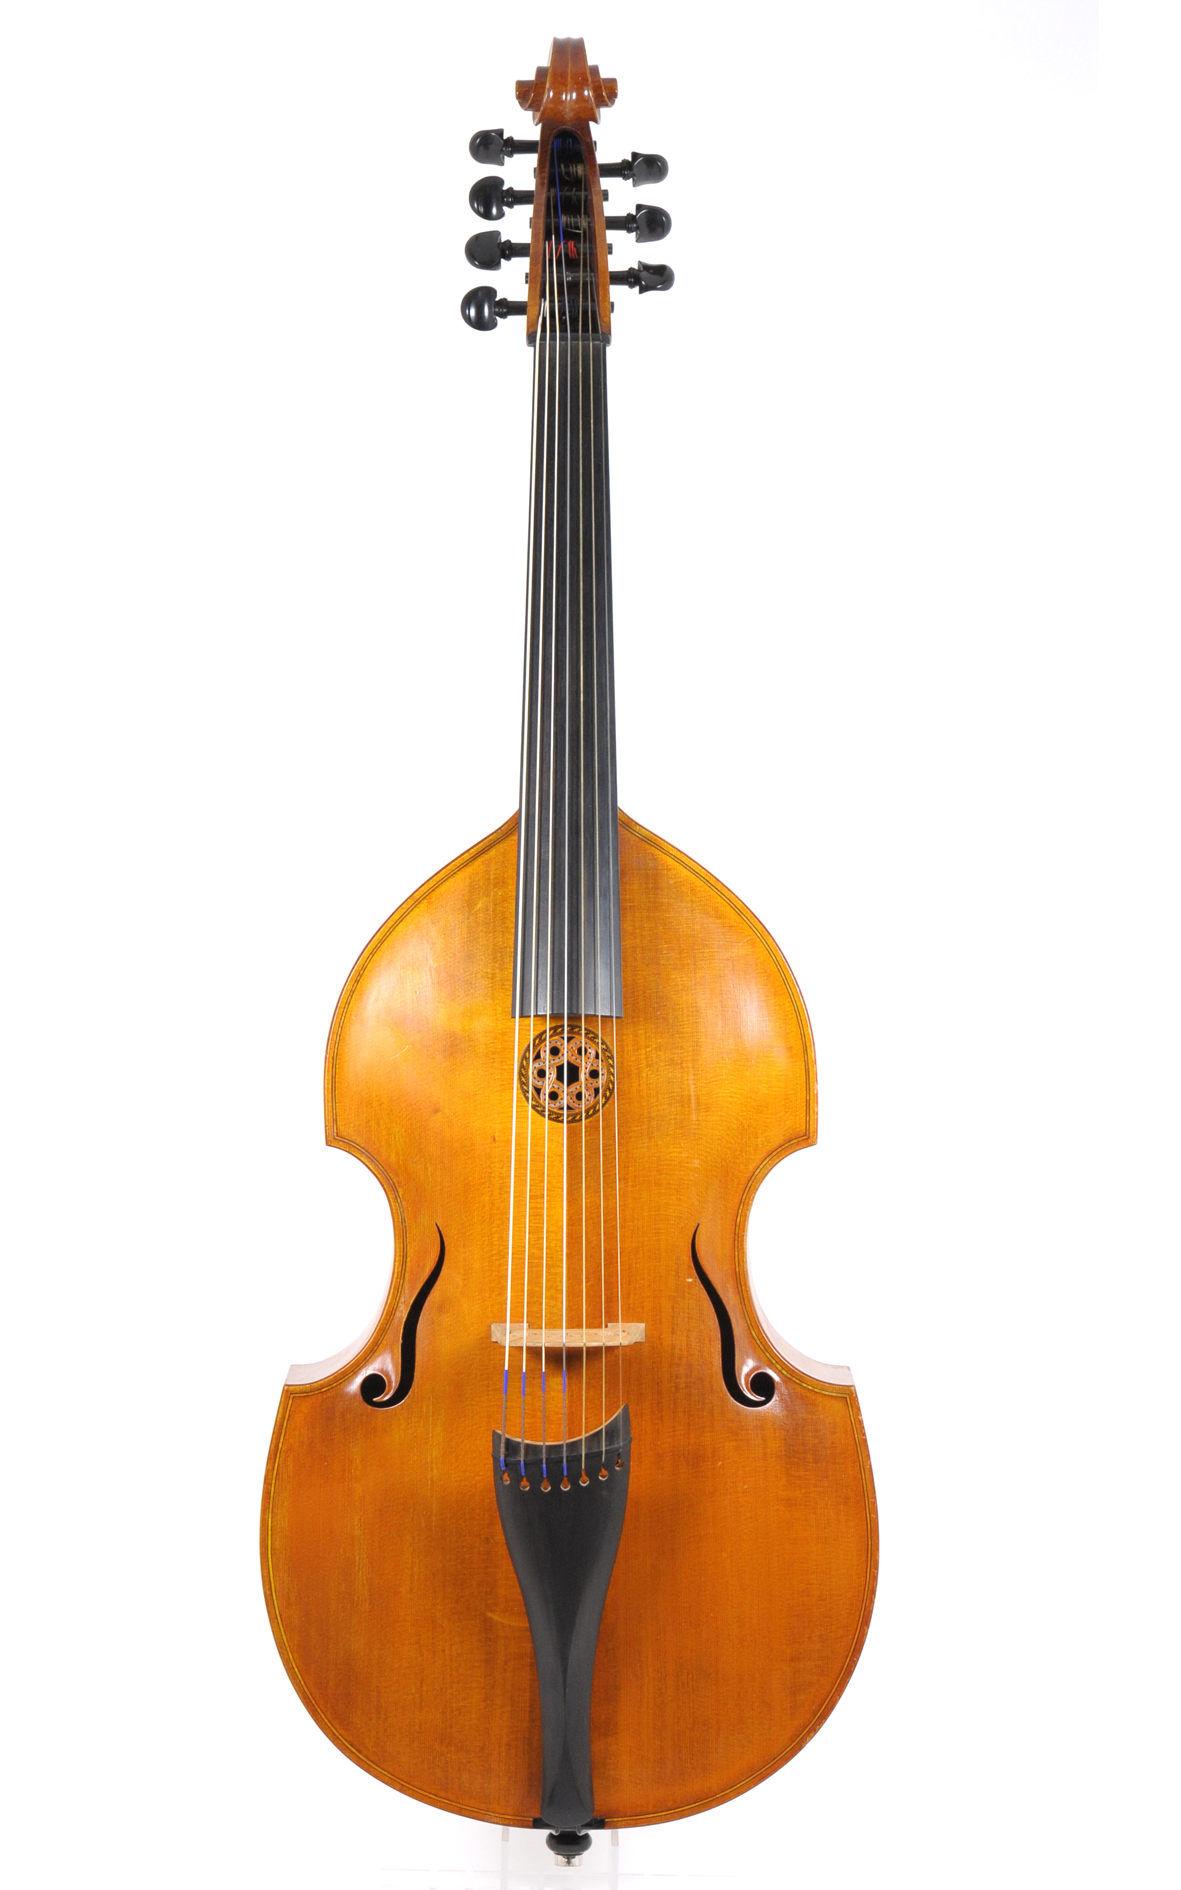 dutch bass viol by theo dellen voorburg viola da gamba rarities voorburg theo dellen. Black Bedroom Furniture Sets. Home Design Ideas